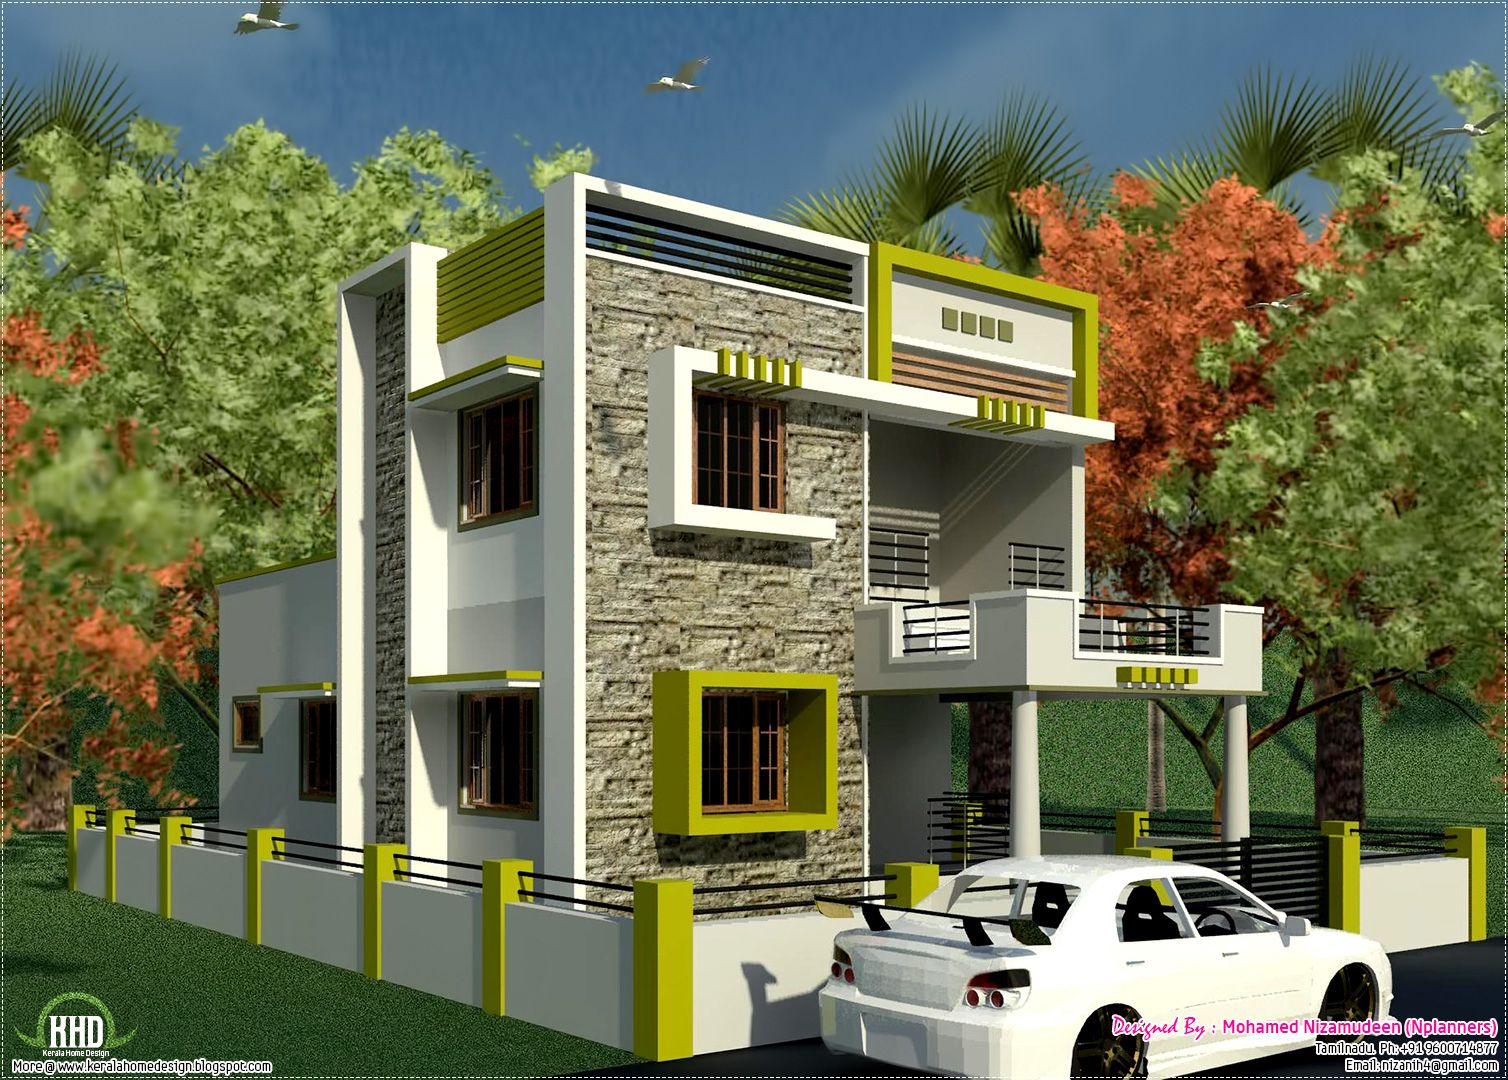 Small house with car park design tobfav com ideas for New home front design